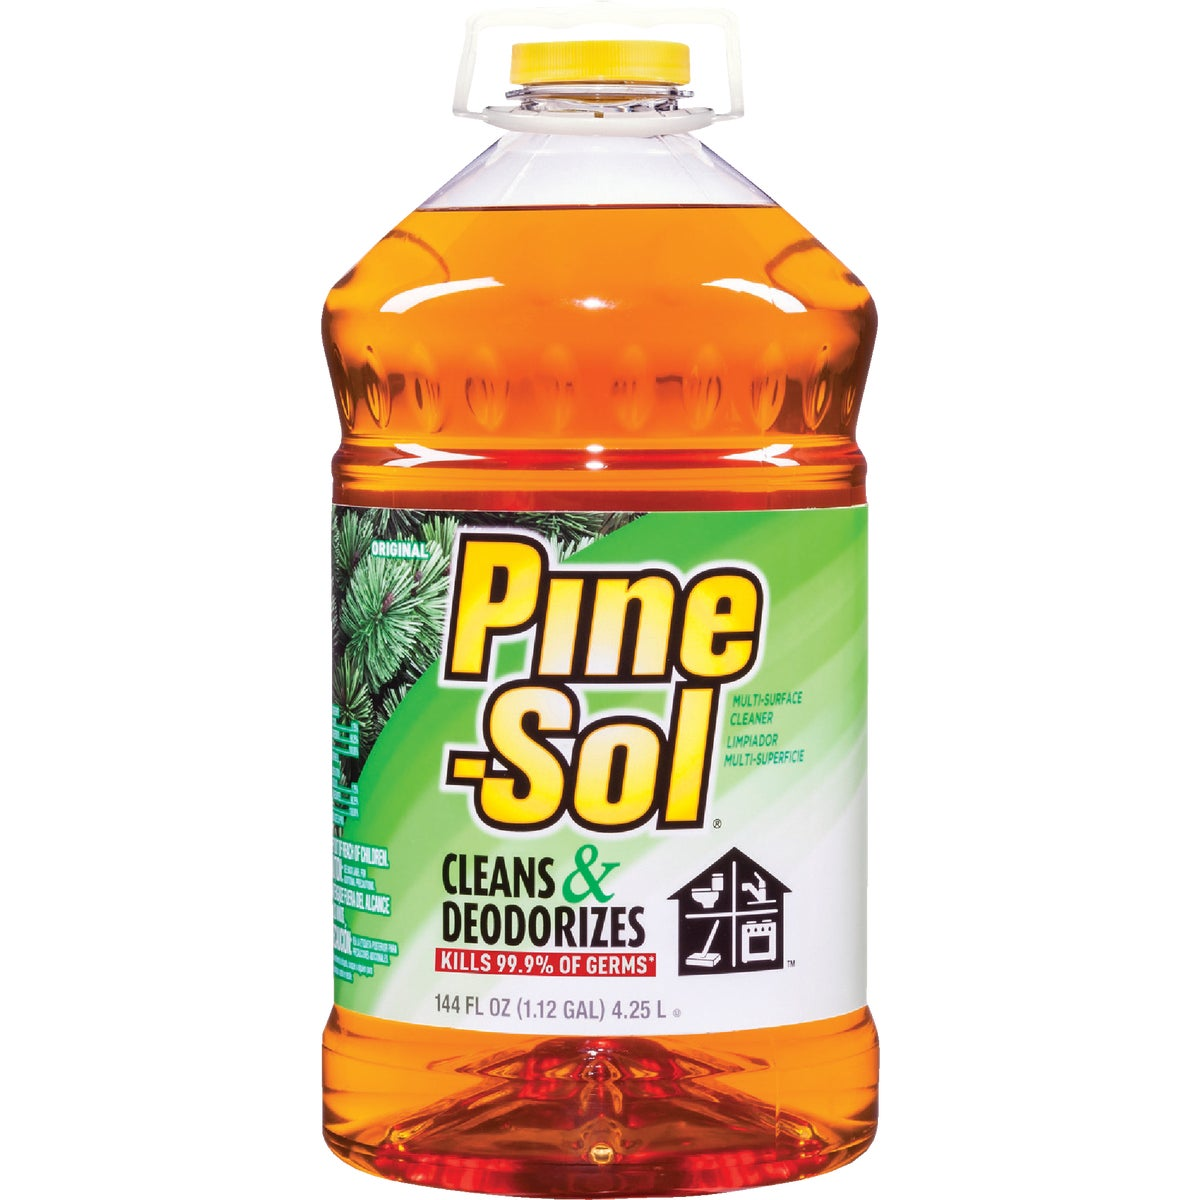 Pine-Sol Original All-Purpose Cleaner, 42464